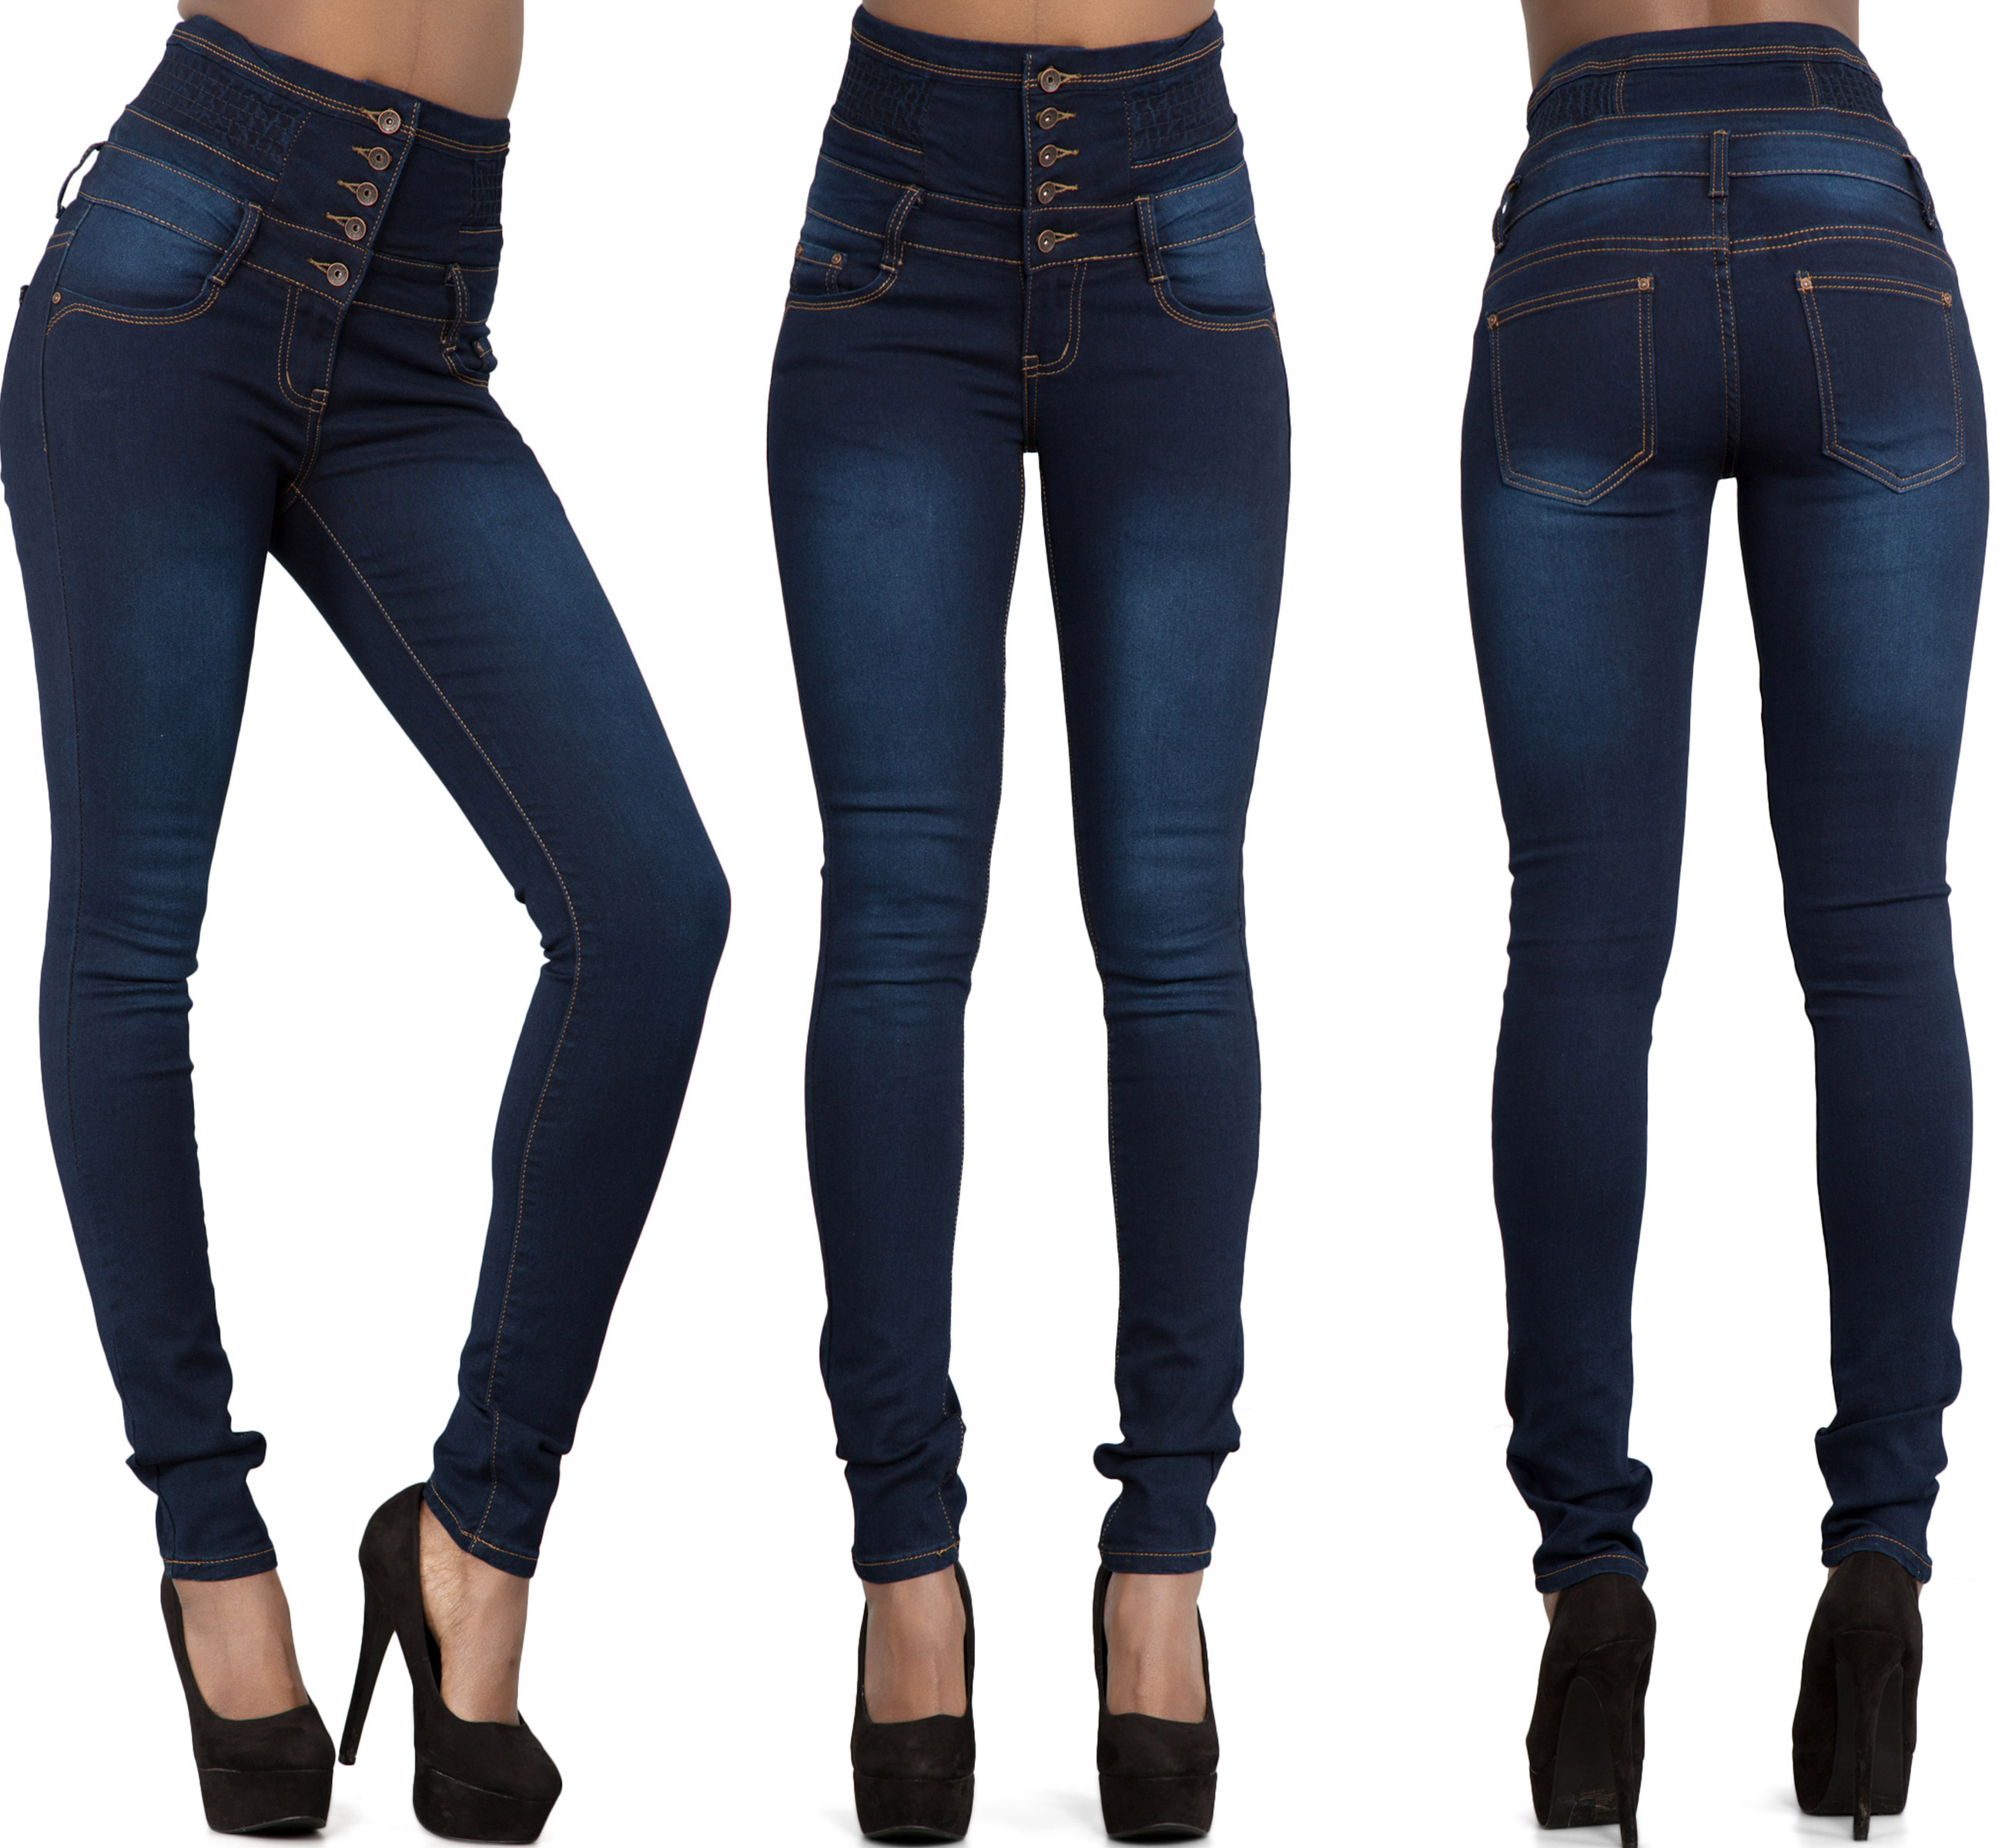 WOMEN-039-S-SUPER-HIGH-WAIST-SKINNY-JEANS-Faded-Acid-Wash-Great-Fit-Denim-SIZE-6-10